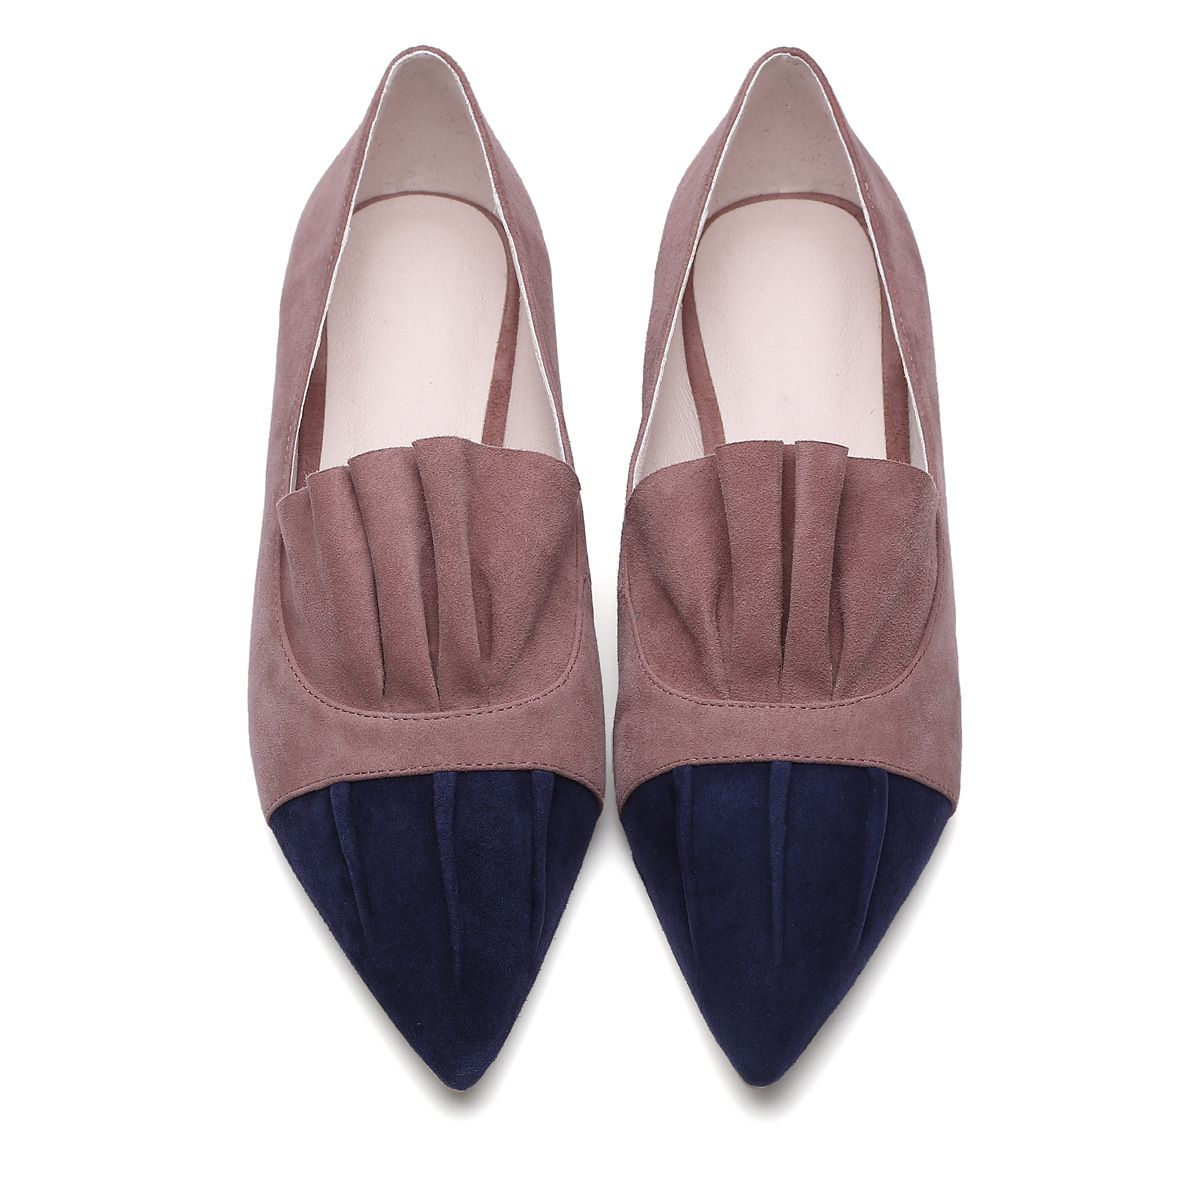 d12bd3d5e 2017 New Leather Sheepskin Pointed Toe Women Flat Shoes Slip on Casual  Ruffles Shoes-in Women's Flats from Shoes on Aliexpress.com   Alibaba Group